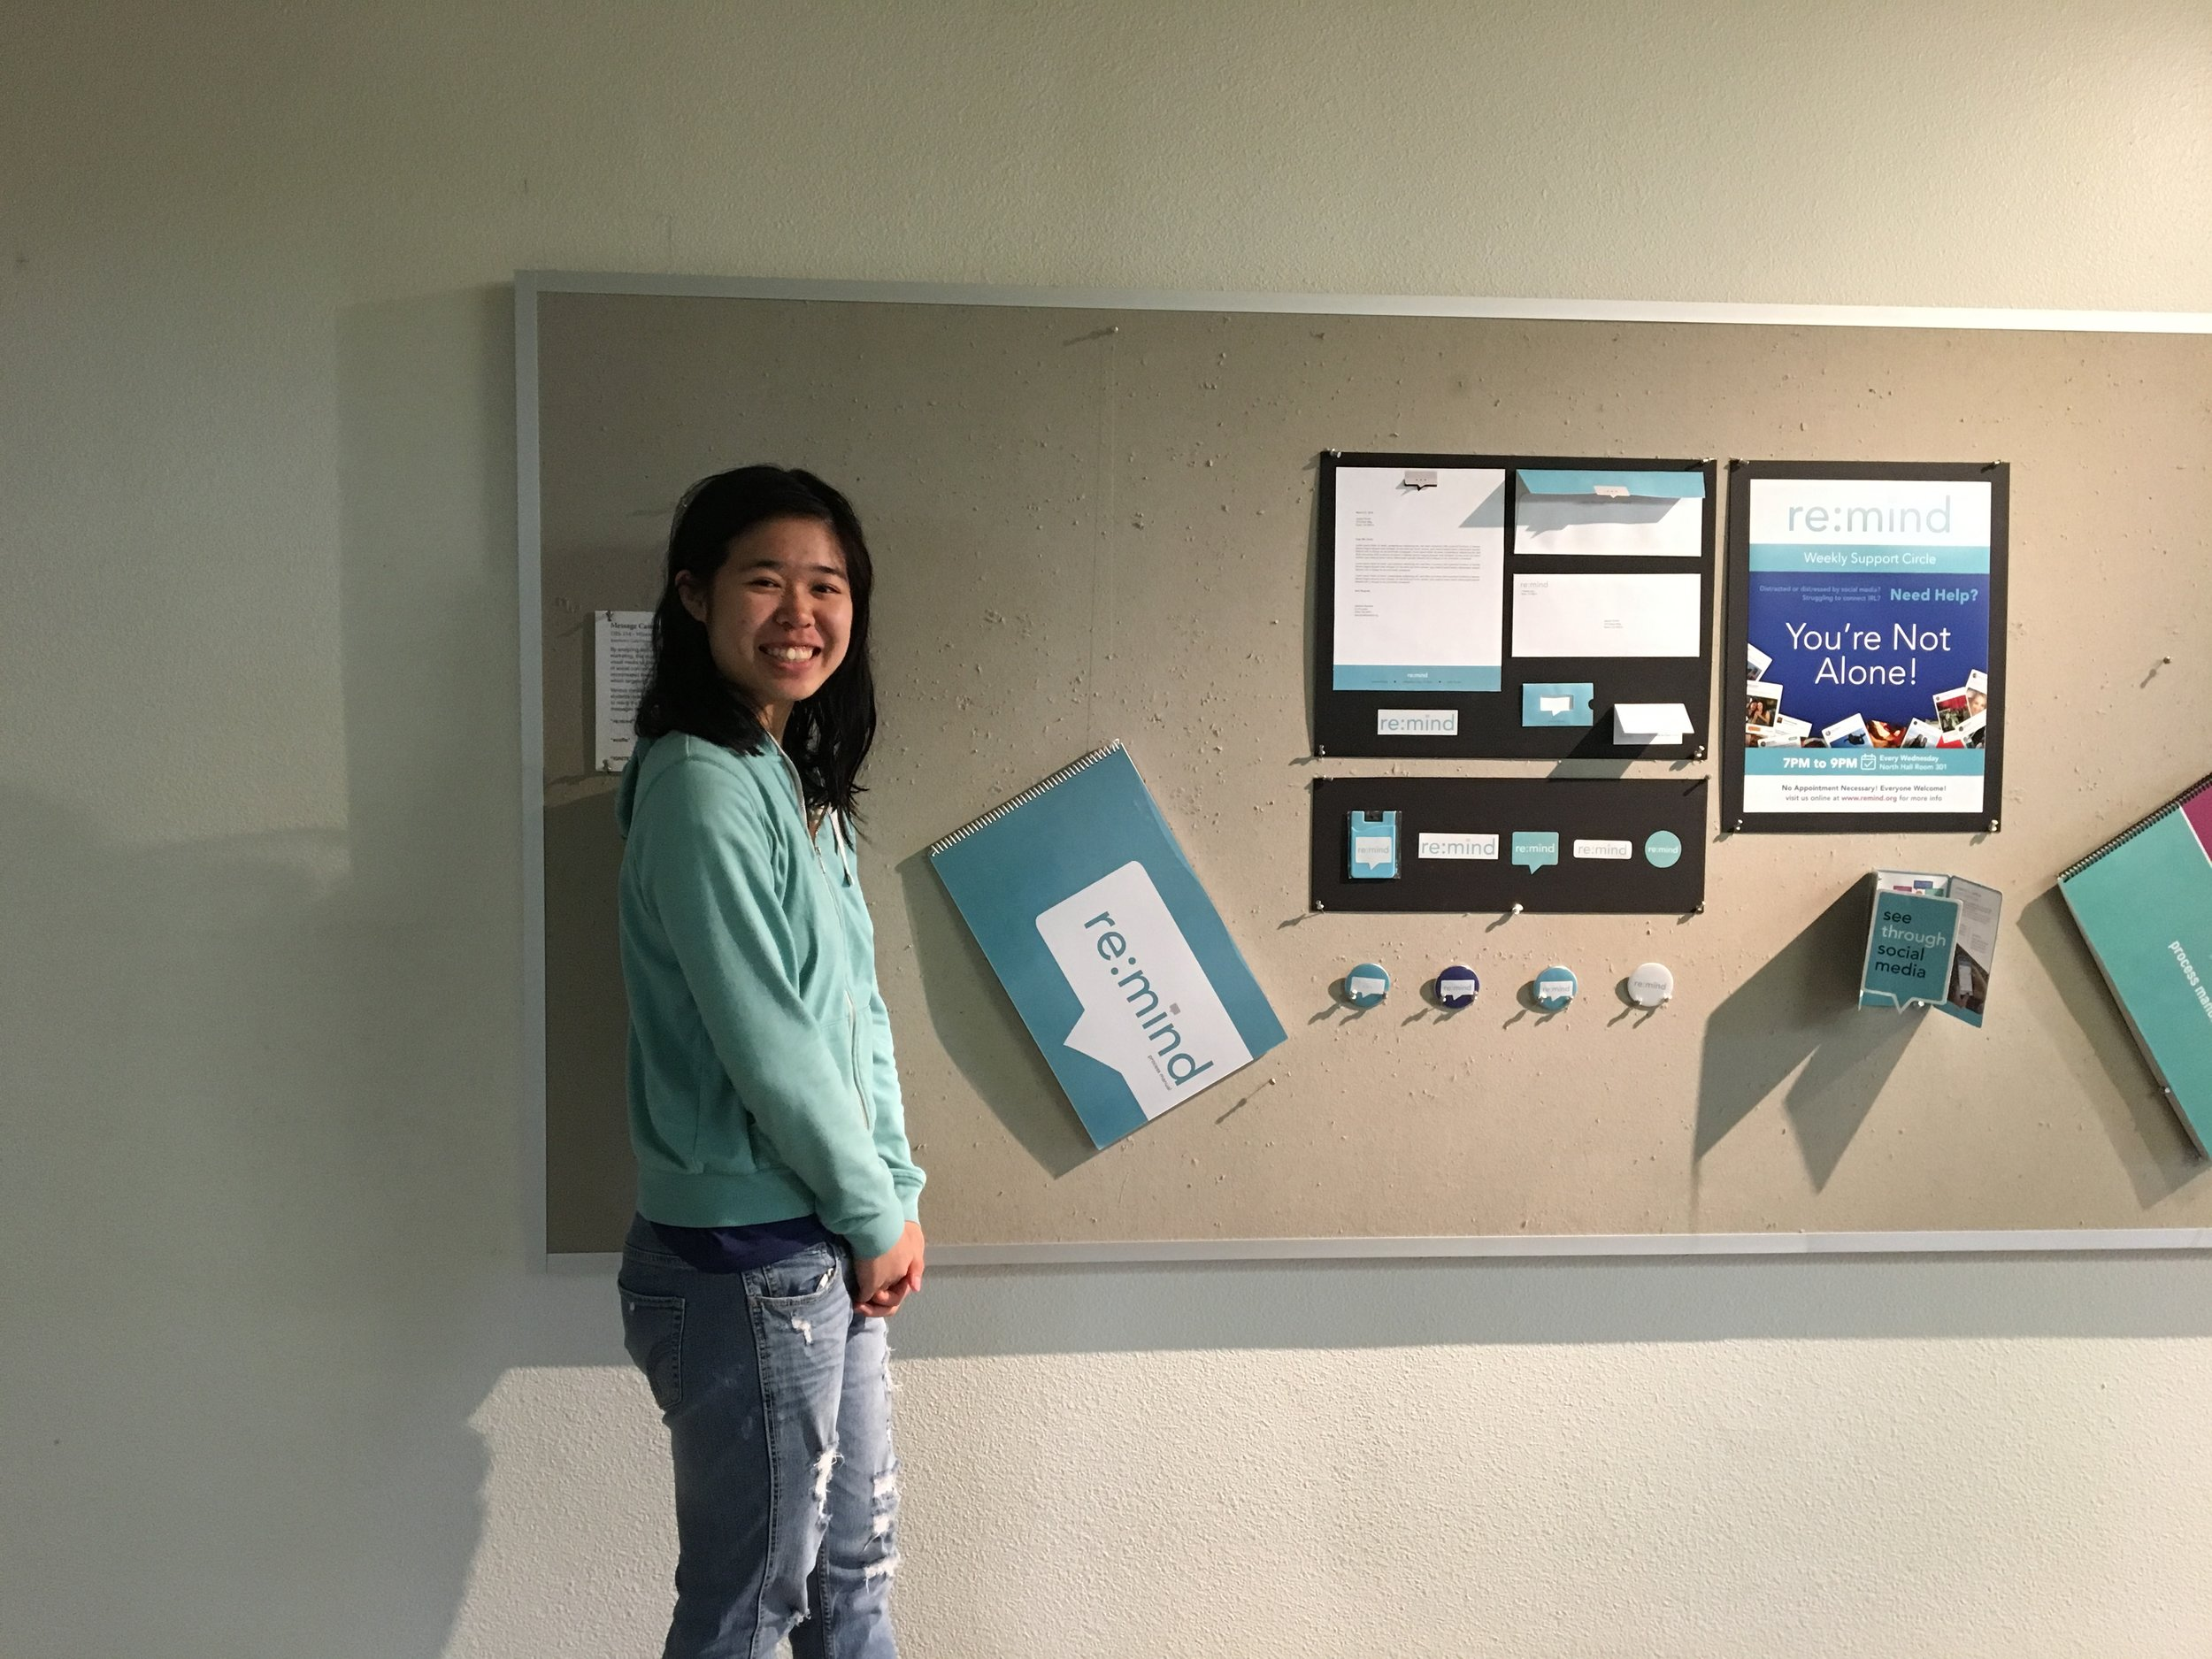 Our campaign was displayed in the Design building, Cruess Hall.